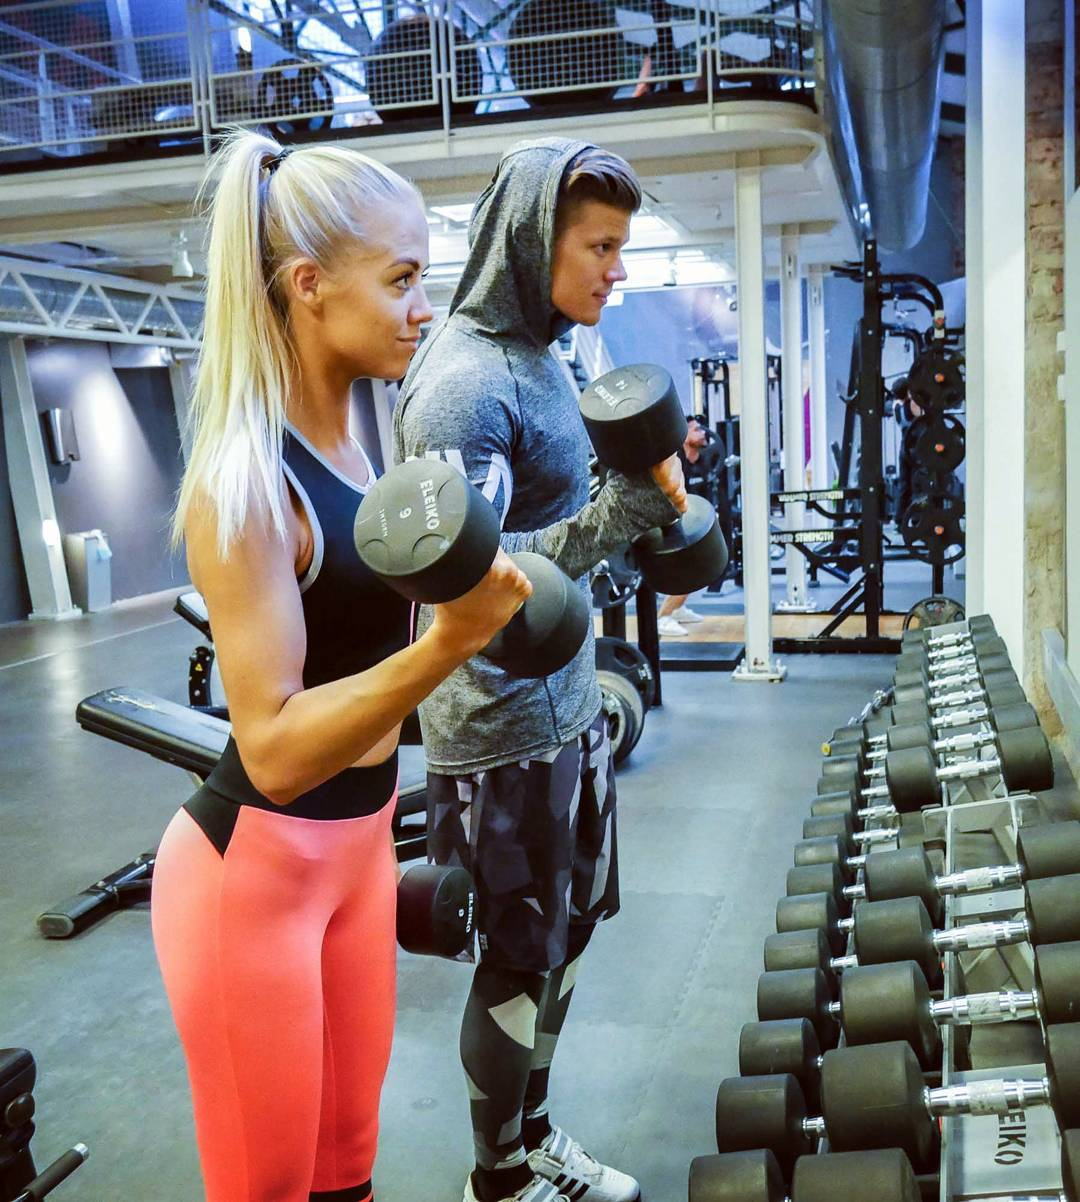 The-10-Fittest-Couples-on-Instagram-02